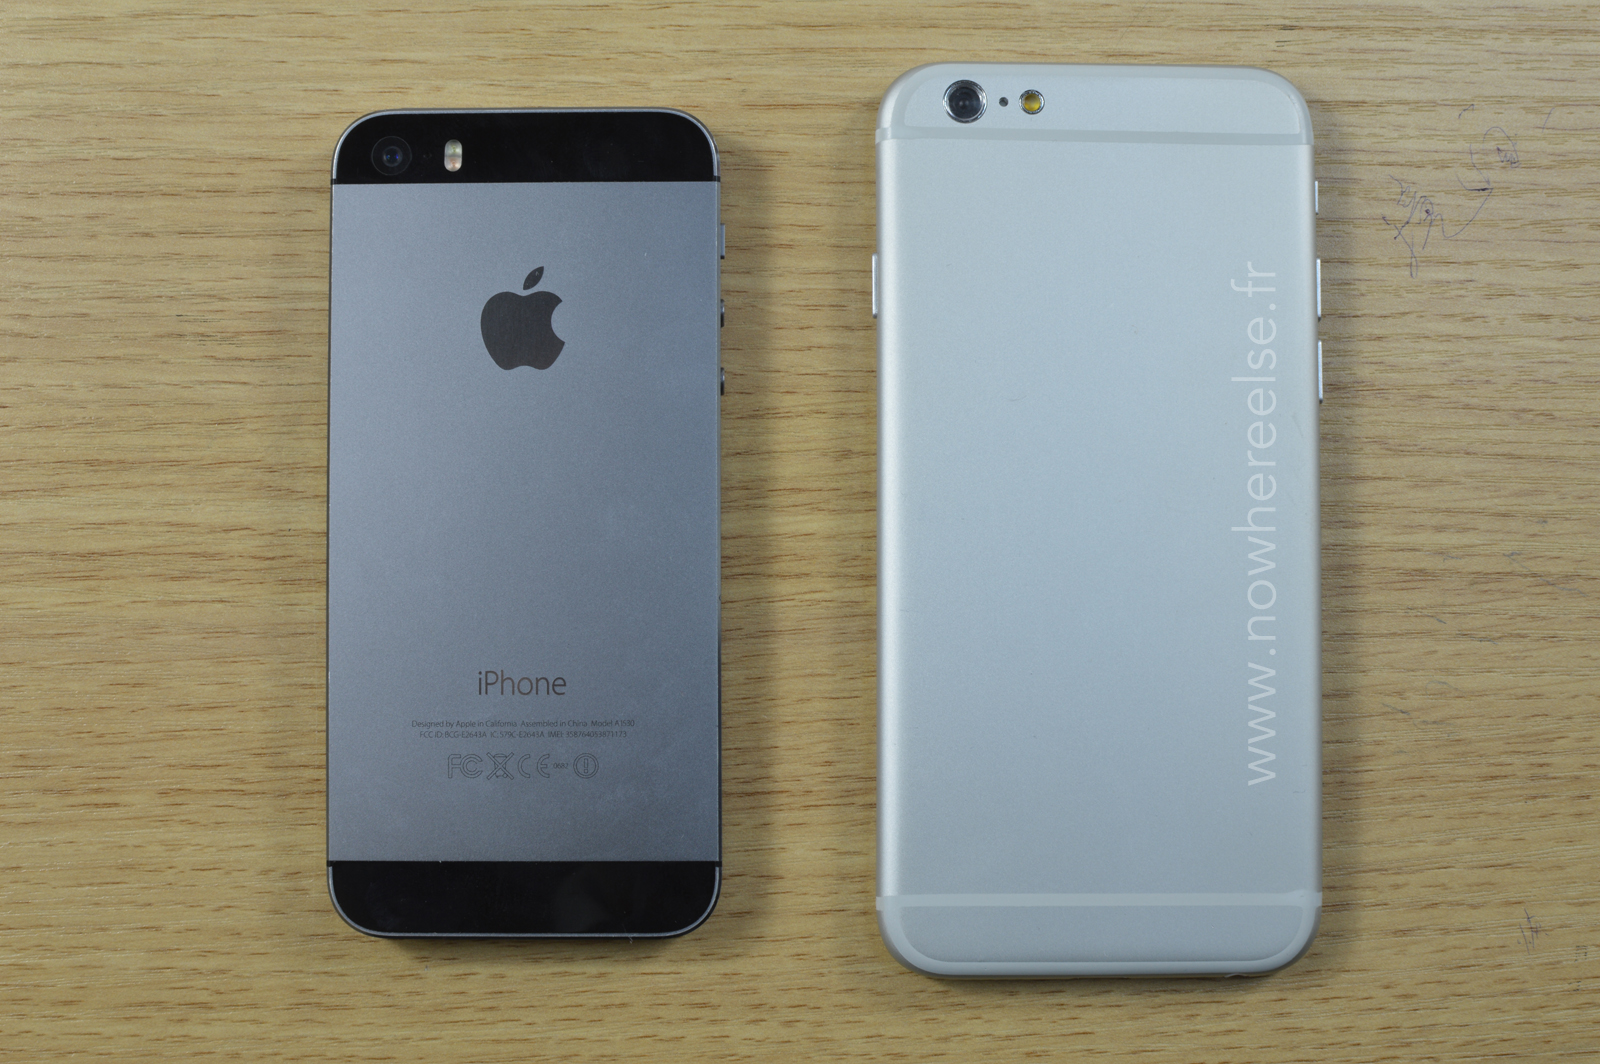 IPhone 5, wikip dia, a enciclop dia livre Timeline - The iPhone Wiki